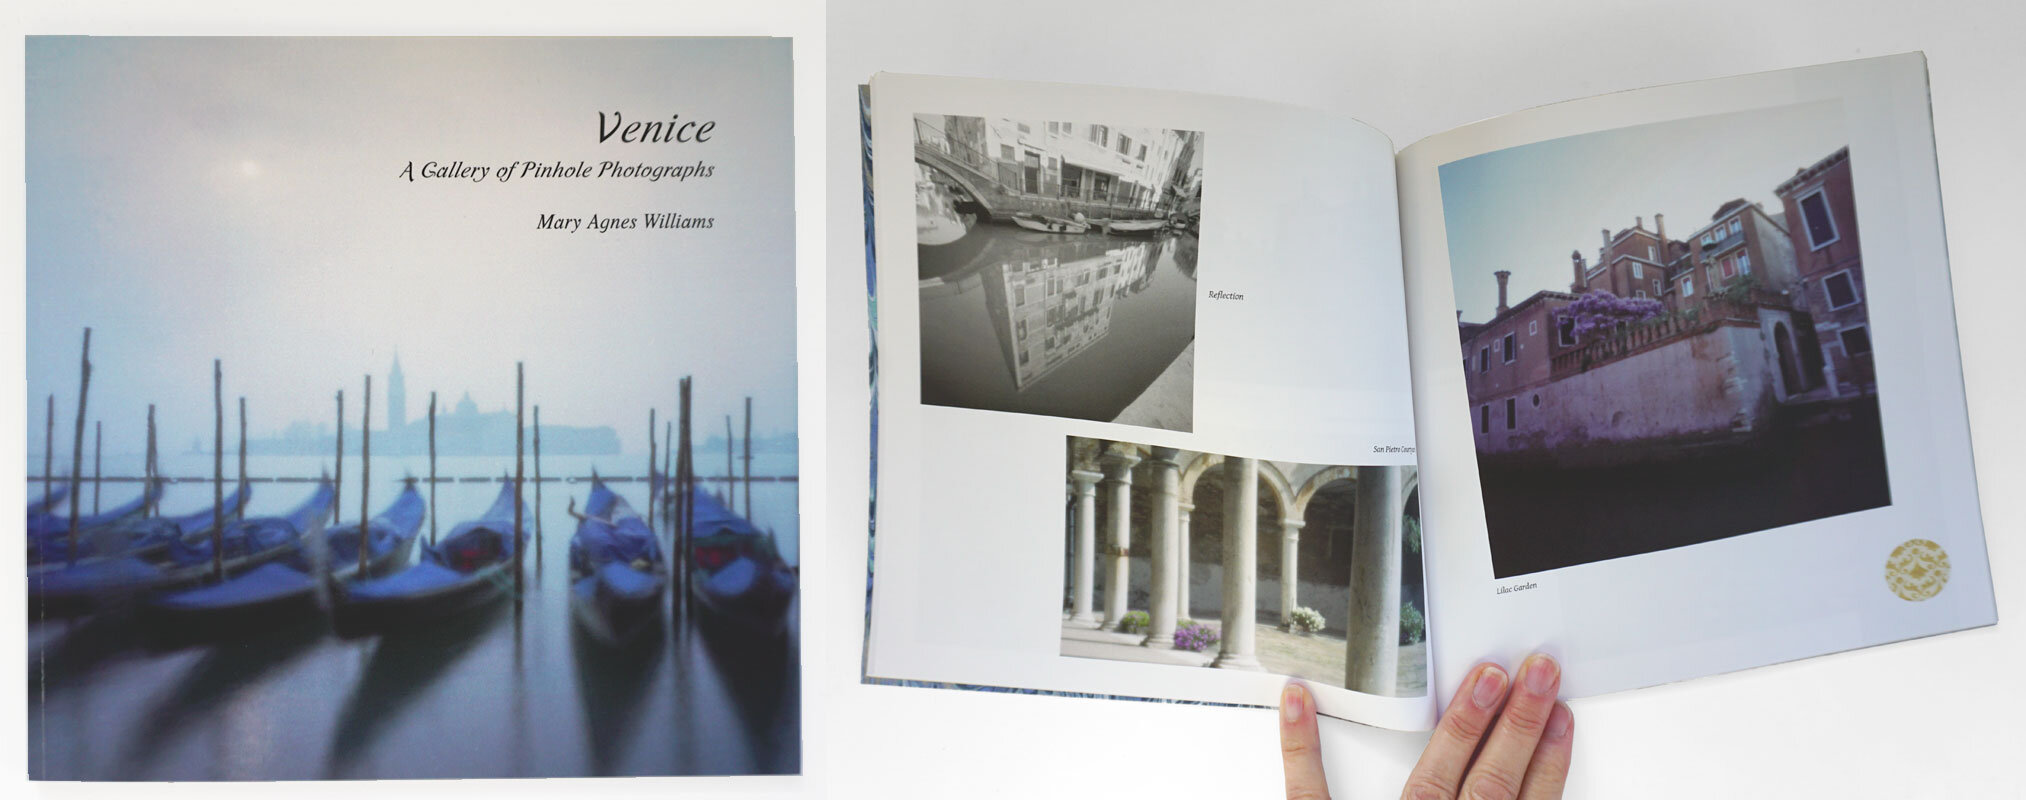 © 2019 Louise Levergneux.  Venice: A Gallery of Pinhole Photographs  by Mary Agnes Williams, a 44-page book featuring 45 color and black and white pinhole photographs of Venice, Italy. This signed digital copy 68/75 was gifted to me by Mary Agnes.